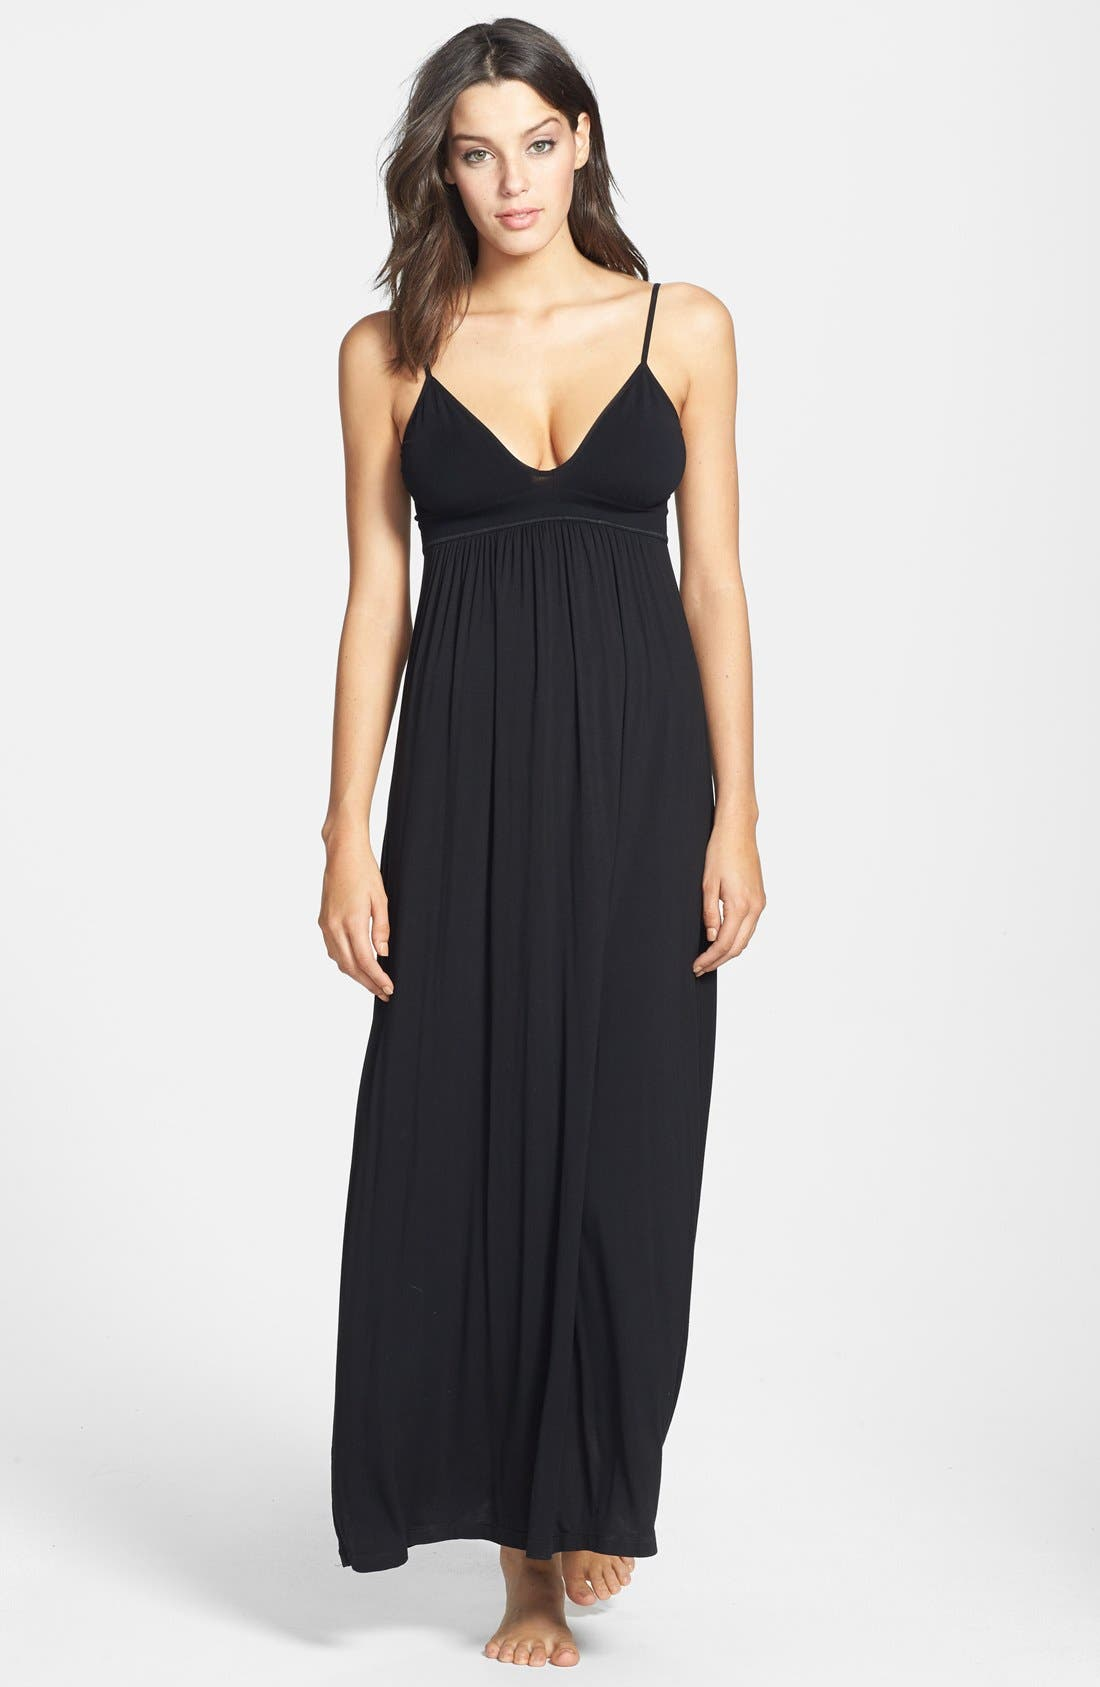 DONNA KARAN NEW YORK,                             Donna Karan Liquid Jersey Empire Waist Nightgown,                             Main thumbnail 1, color,                             001